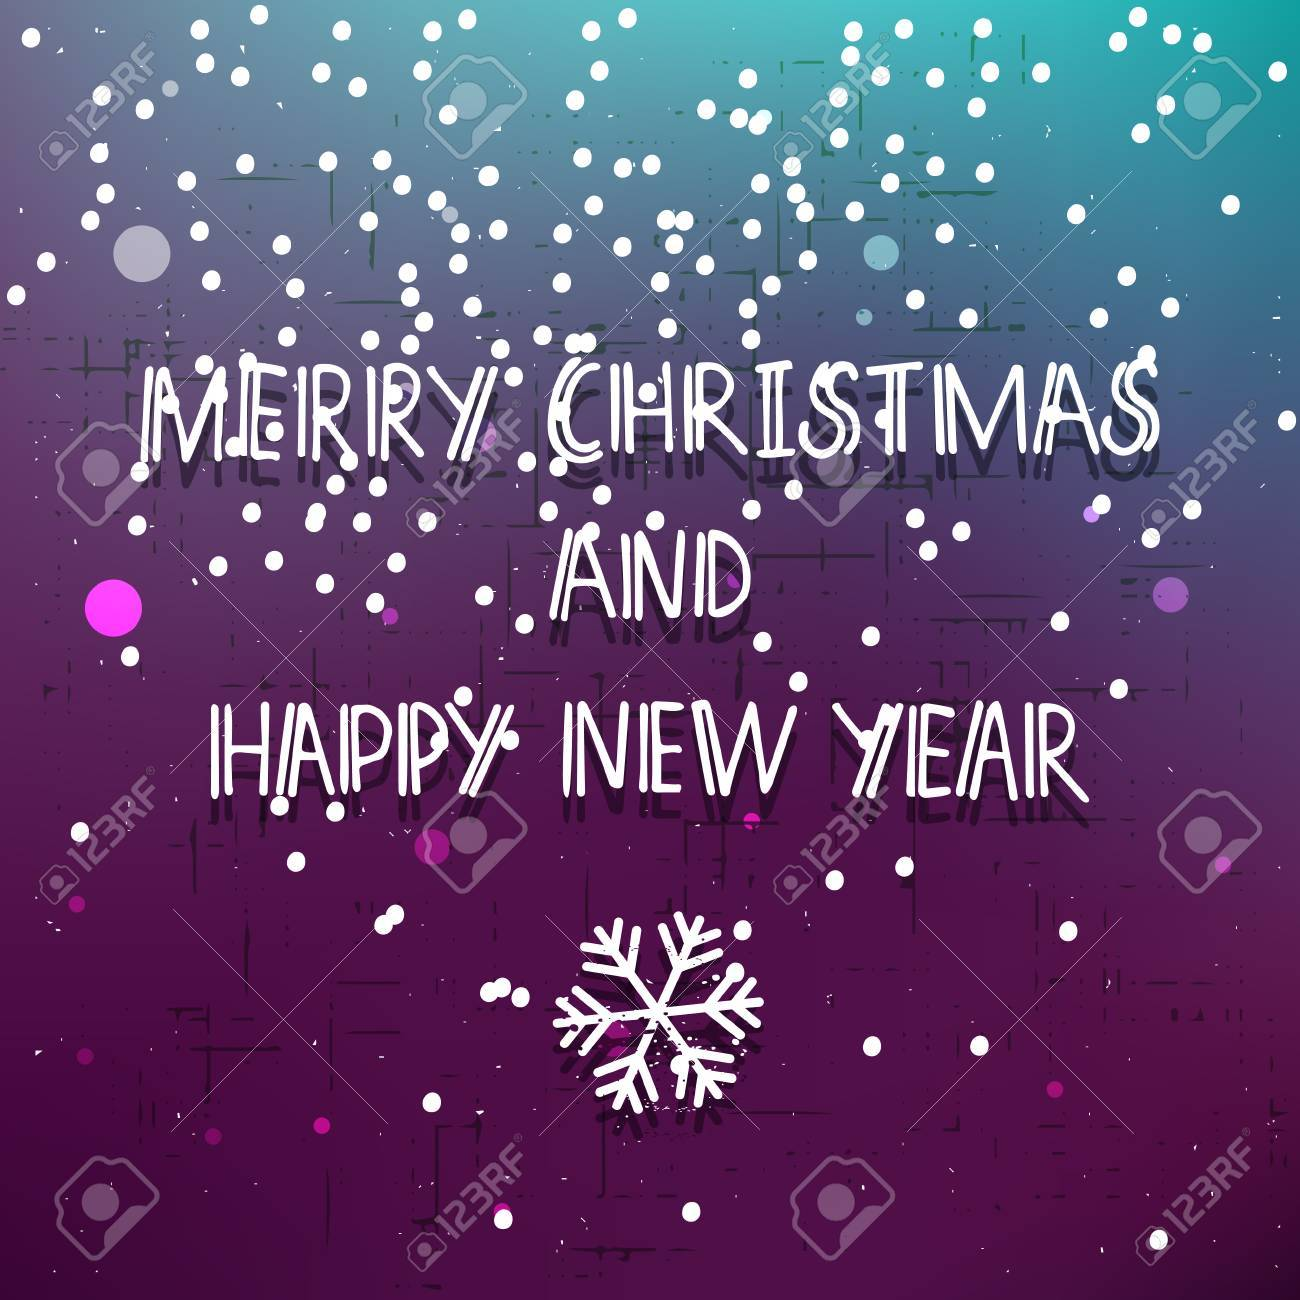 vector vector purple merry christmas and happy new year invitation card with snowflake snow and glitter